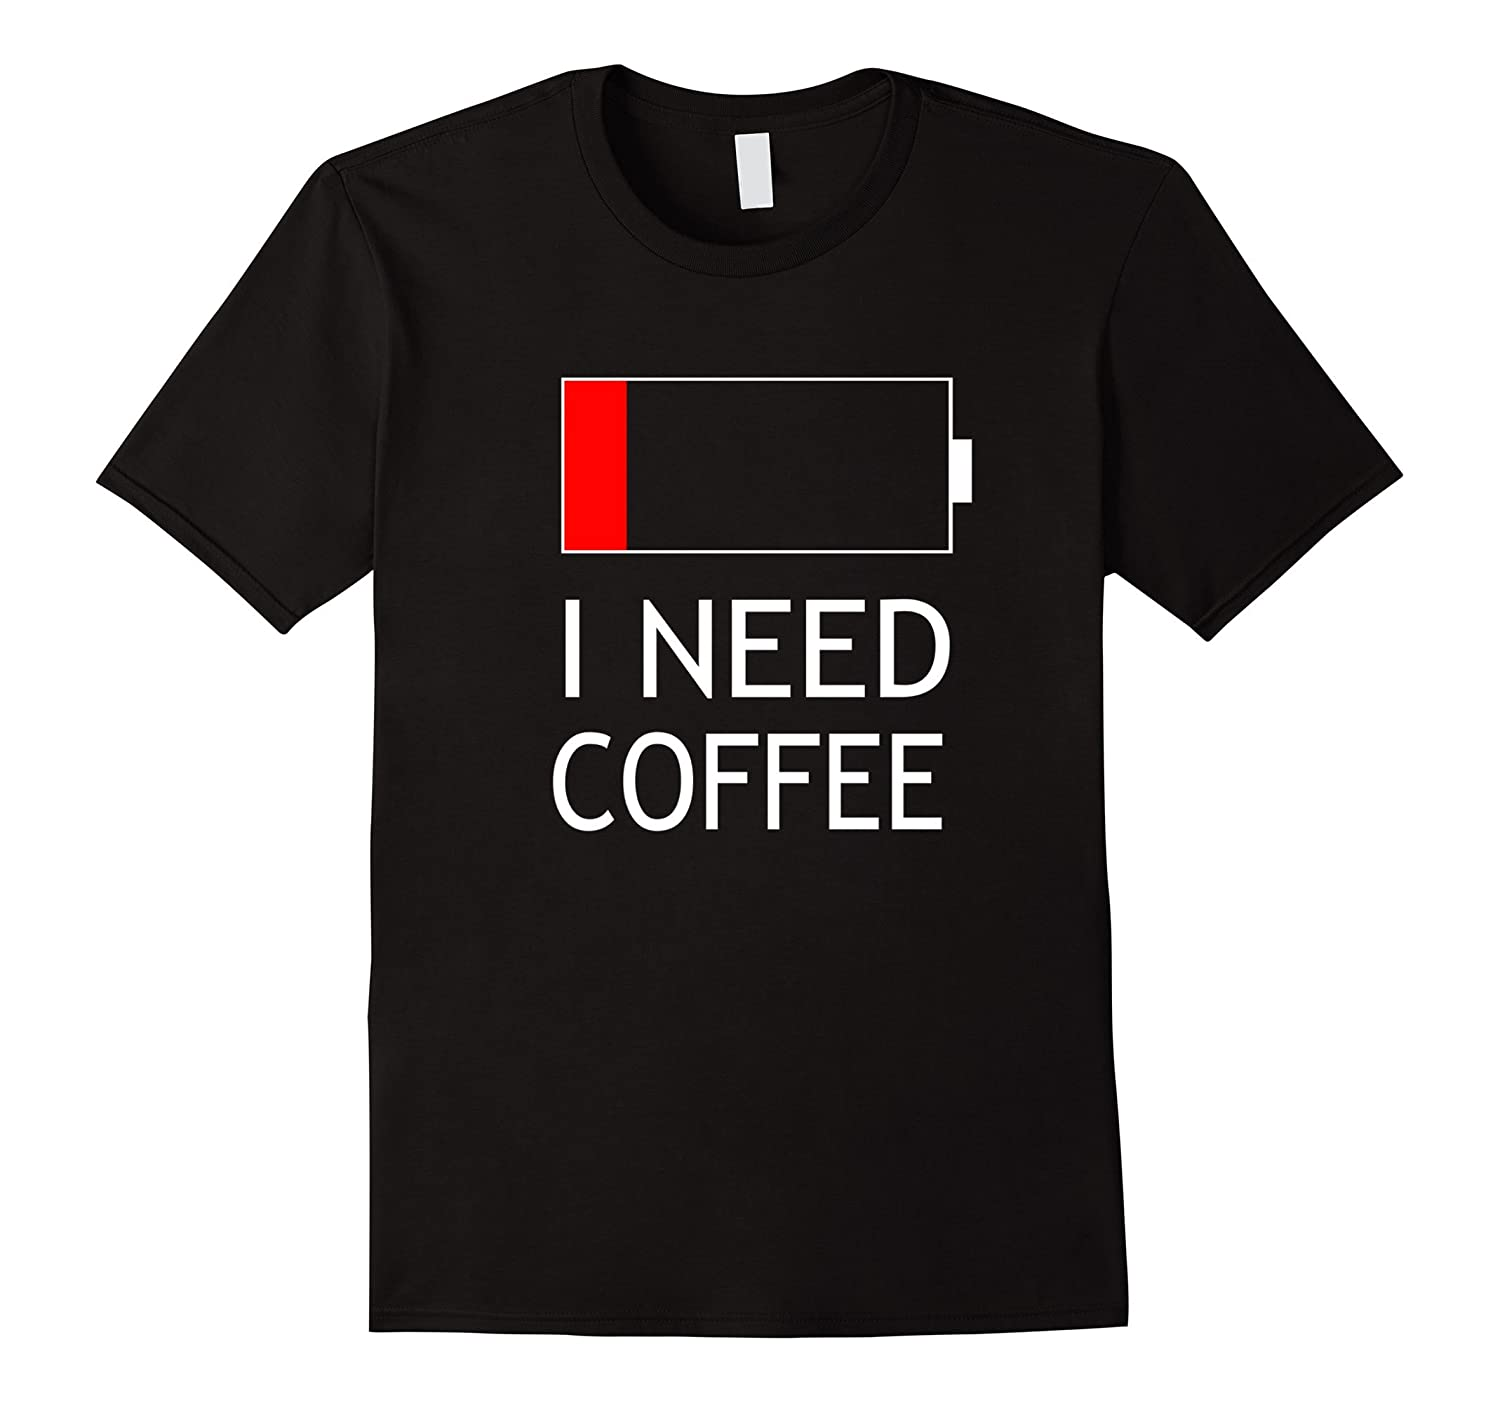 But first I need coffee t shirt with low battery graphic-TD